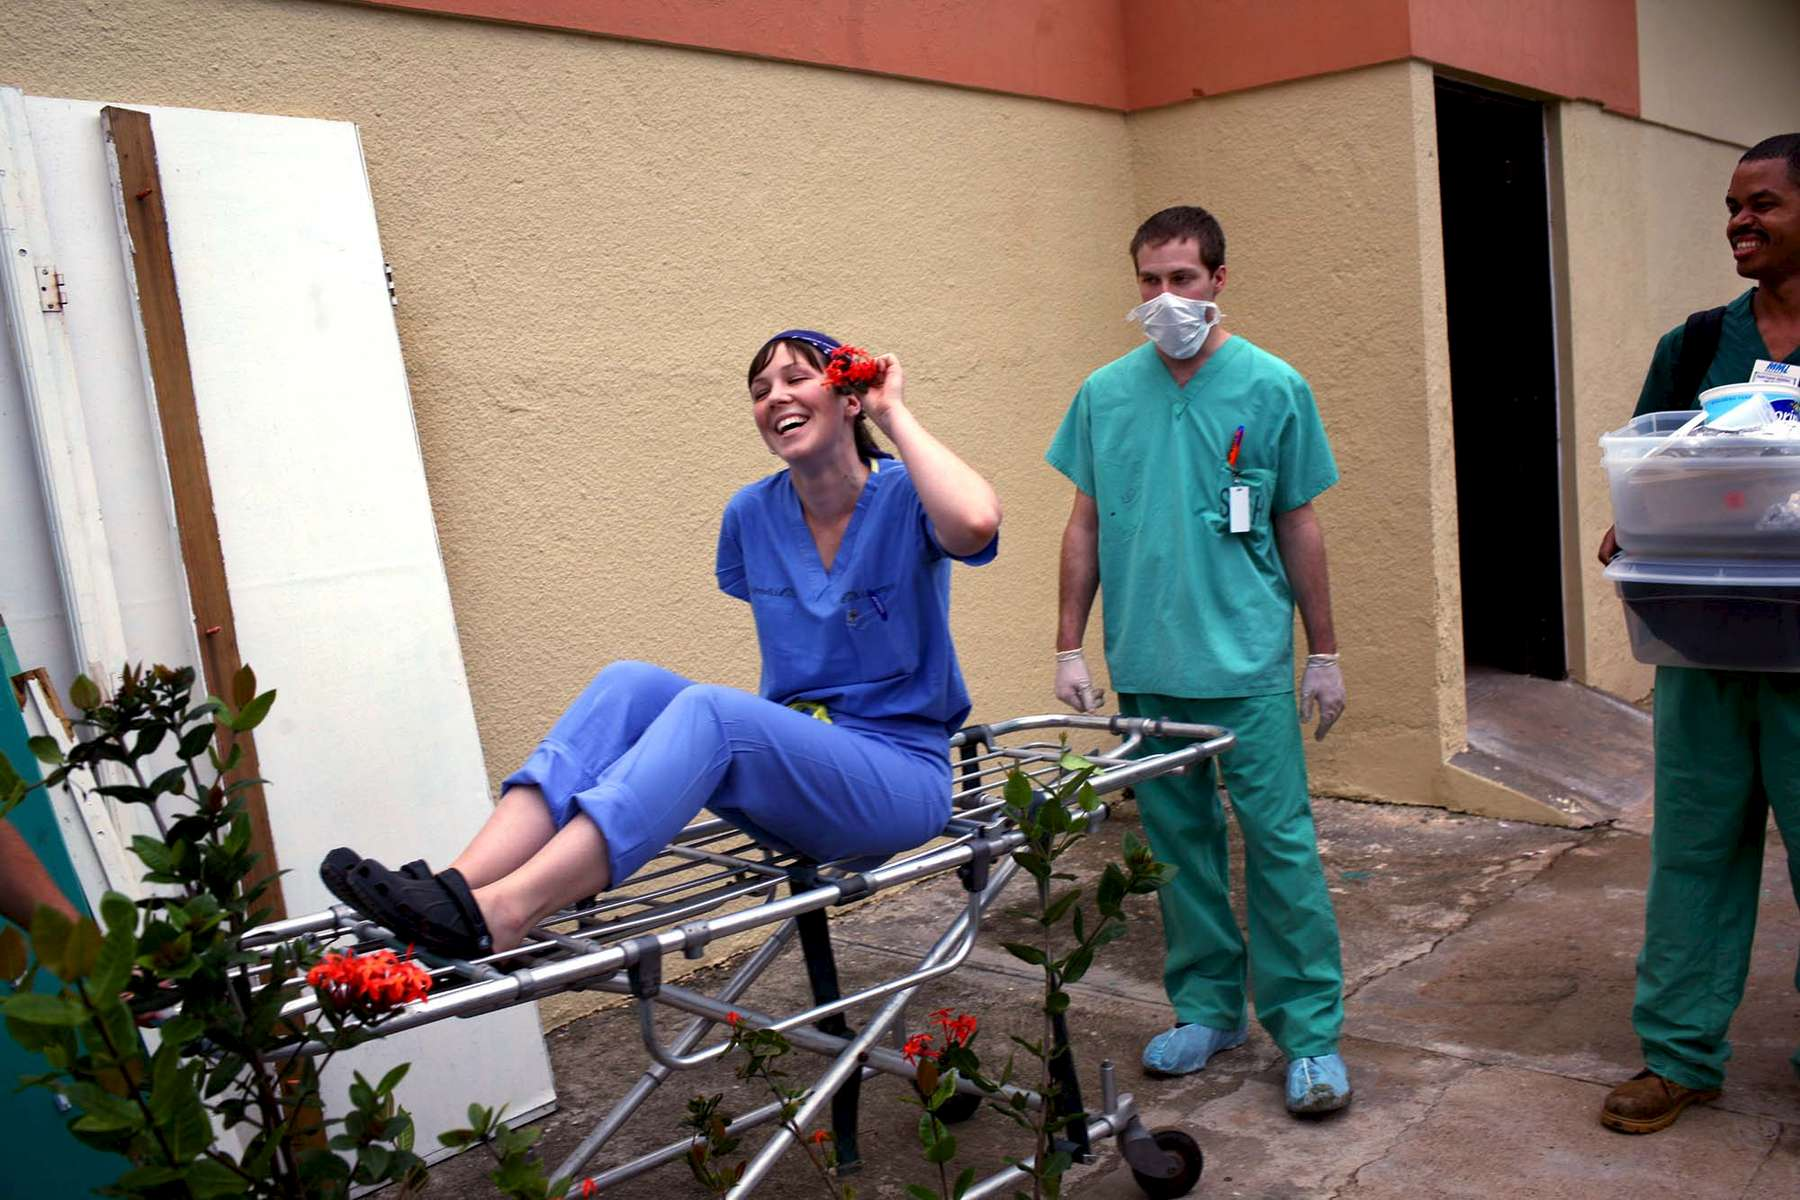 Hilarie Tomasiewicz, a medical student, kids around while she hitches a ride on a stretcher. This was her first medical trip.